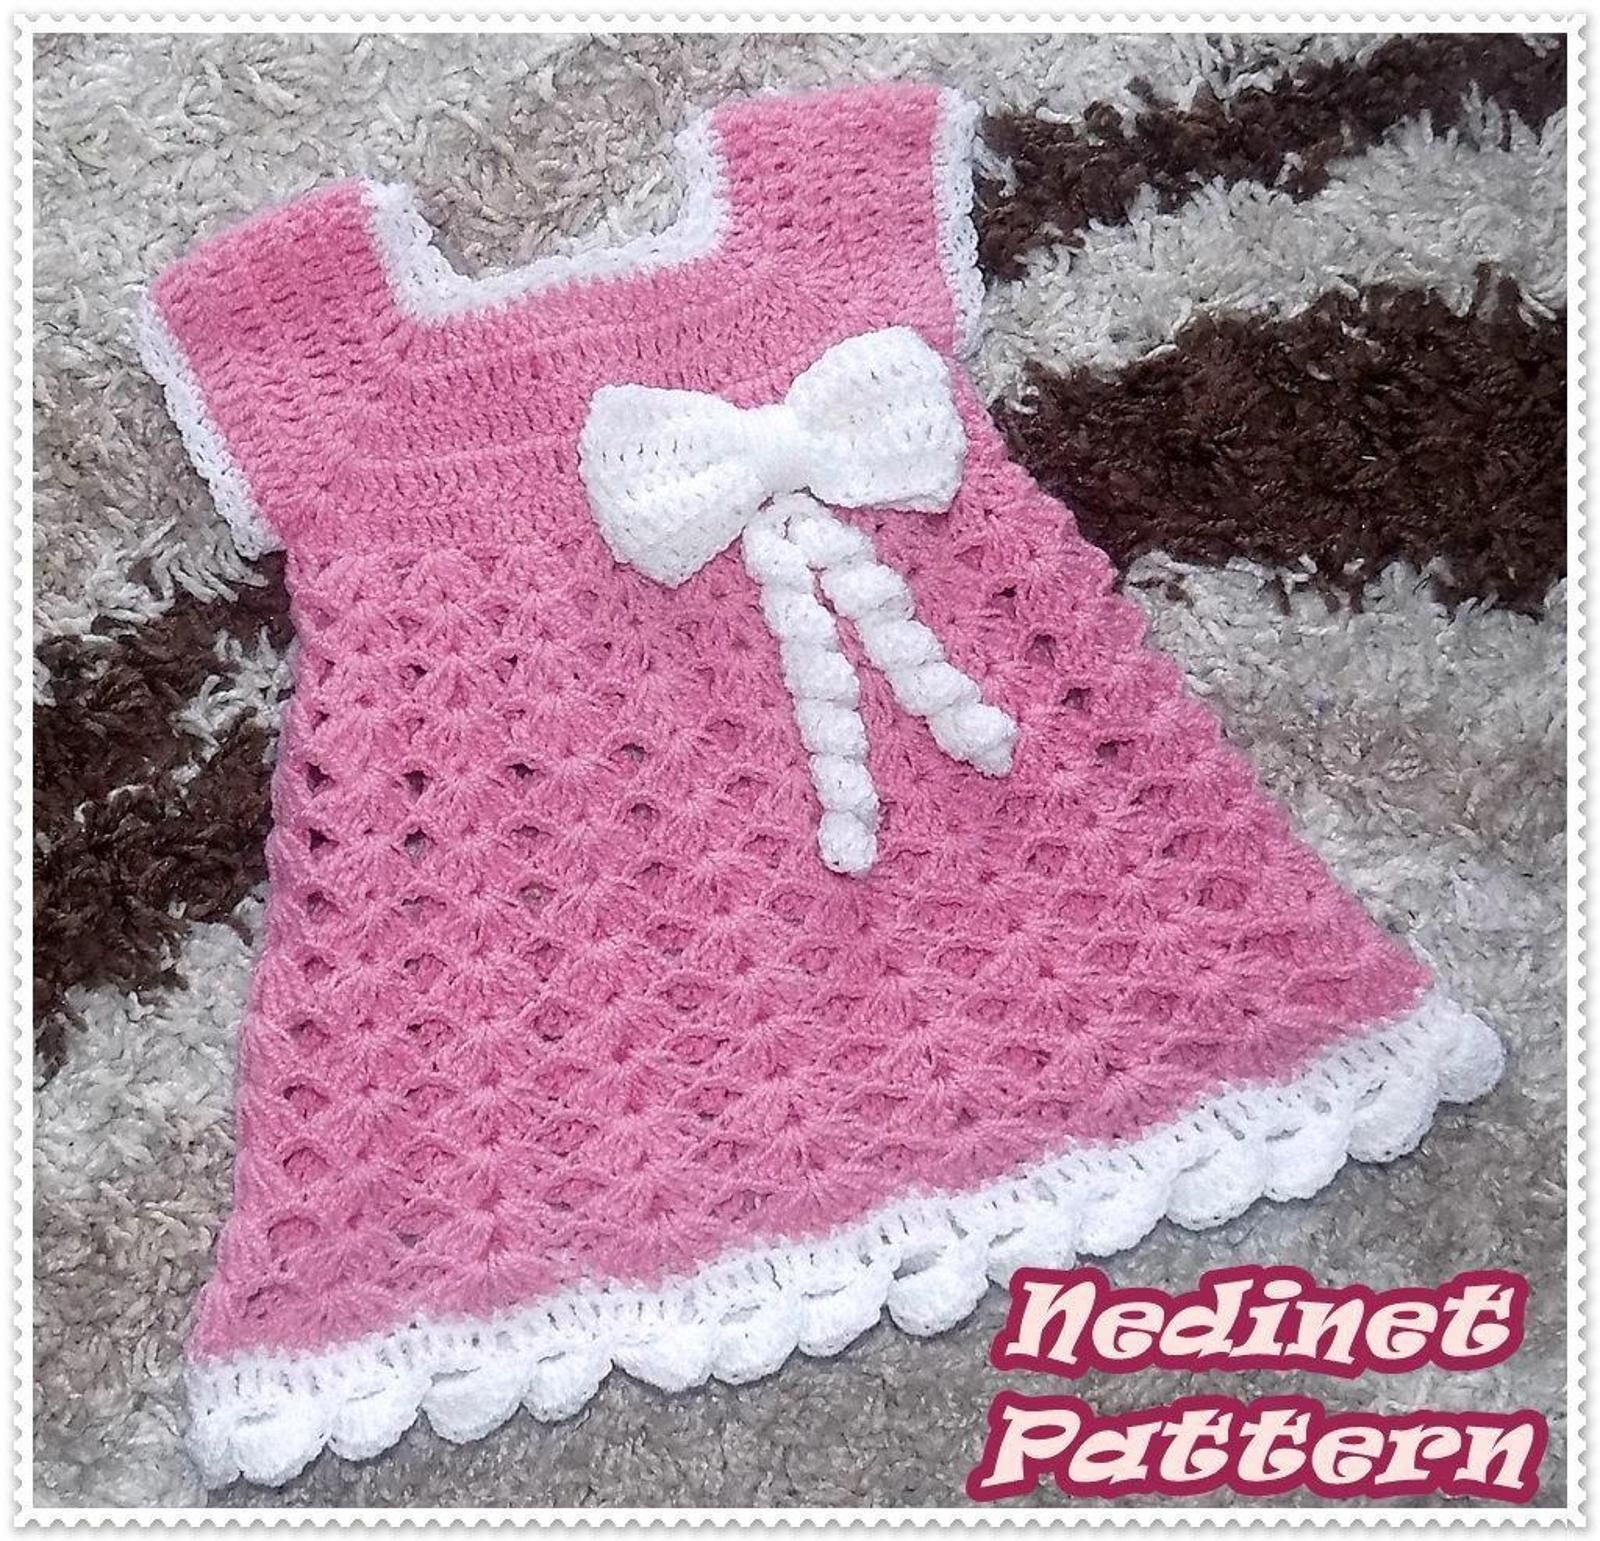 Easy crochet baby dress patterns dress up your pretty little crochet baby dress pattern 0 4 years lovely easy crochet baby dress patterns the bankloansurffo Gallery